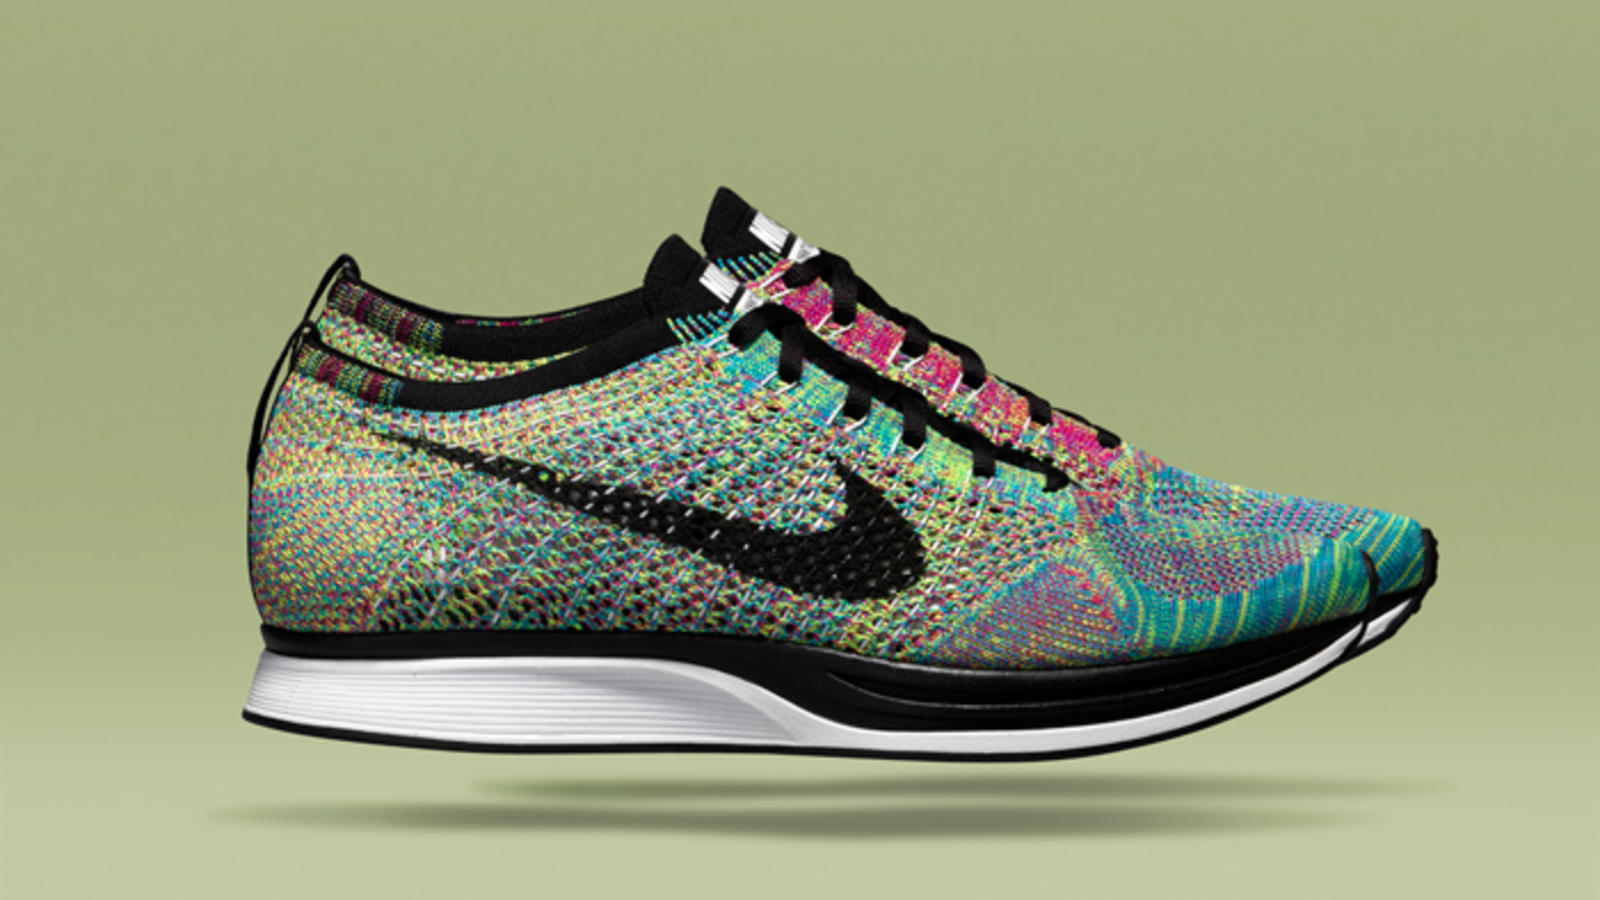 Nike Flyknit Racer Women extreme-hosting.co.uk c4a6ee47c882